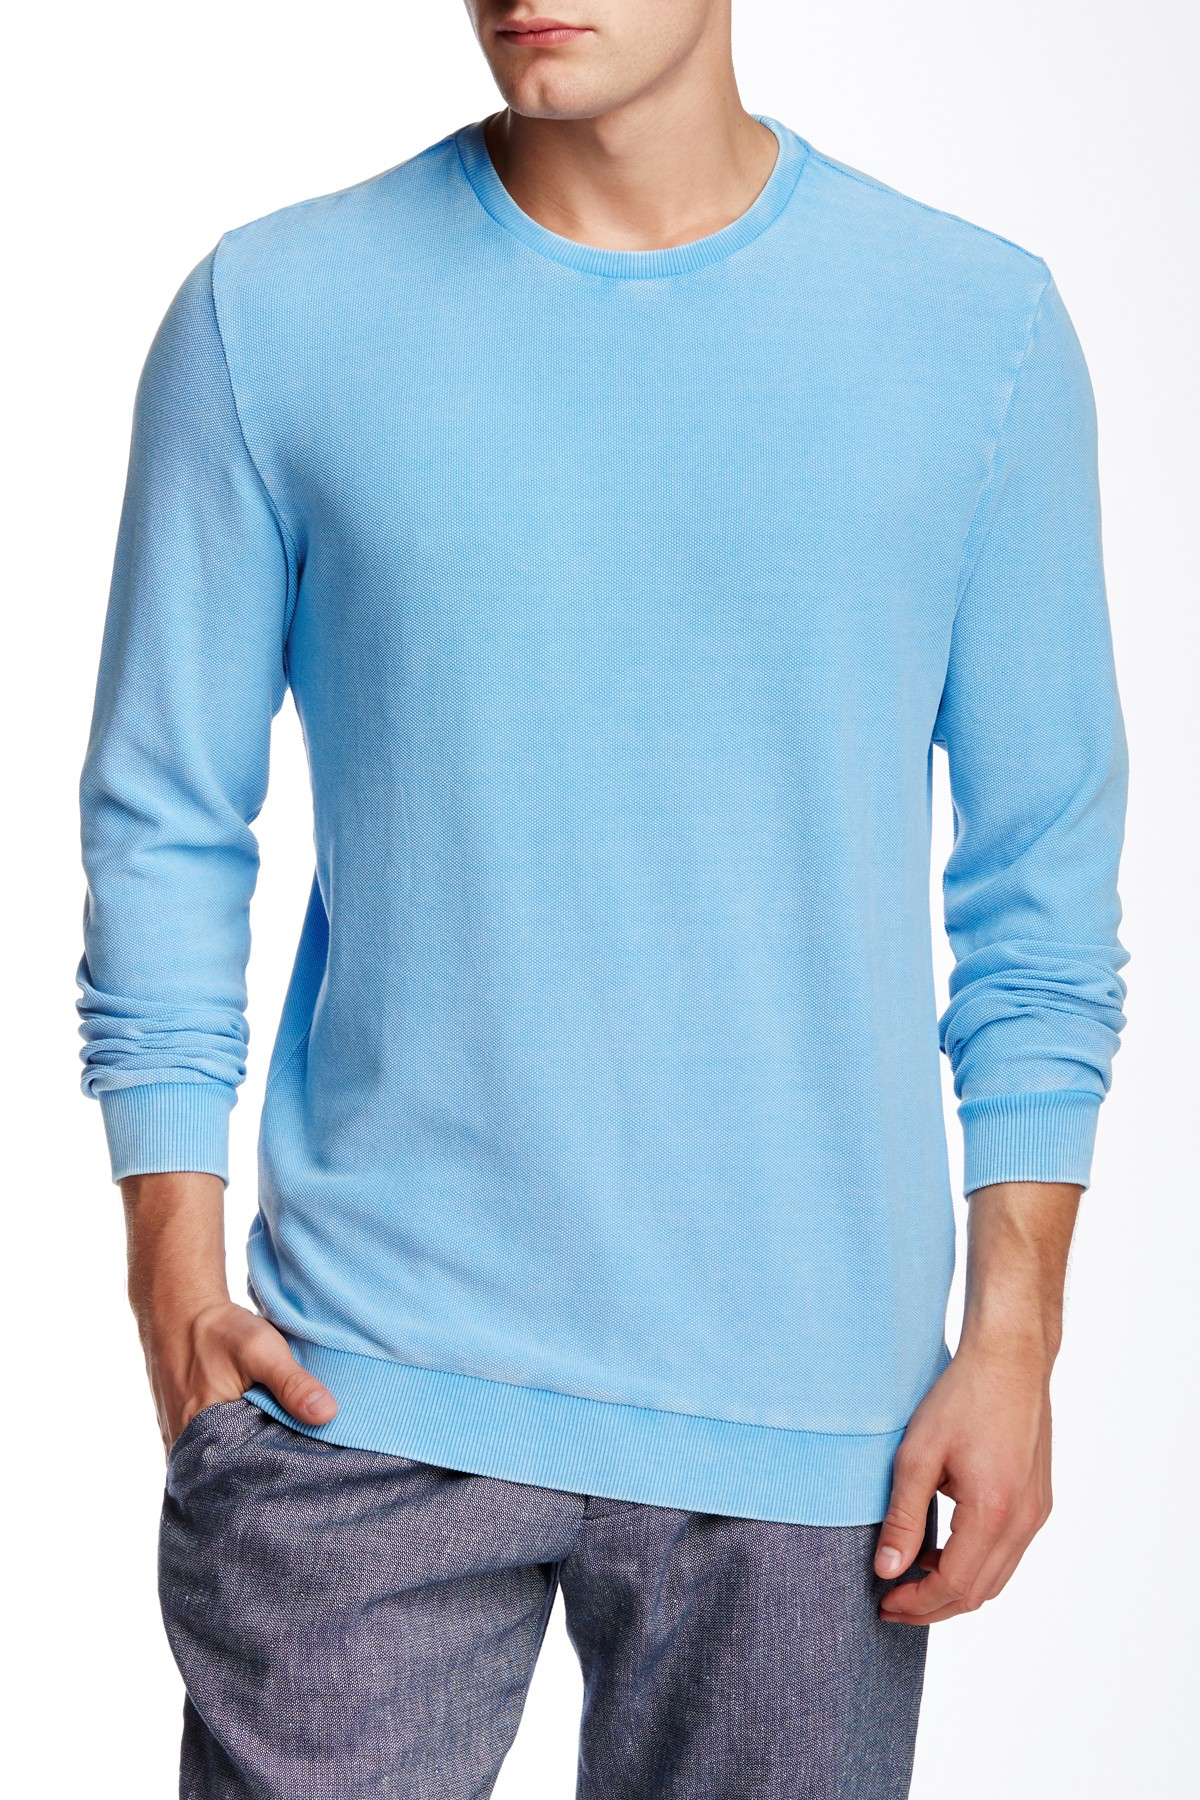 Slate And Stone Clothing : Lyst slate stone crew neck long sleeve tee in blue for men